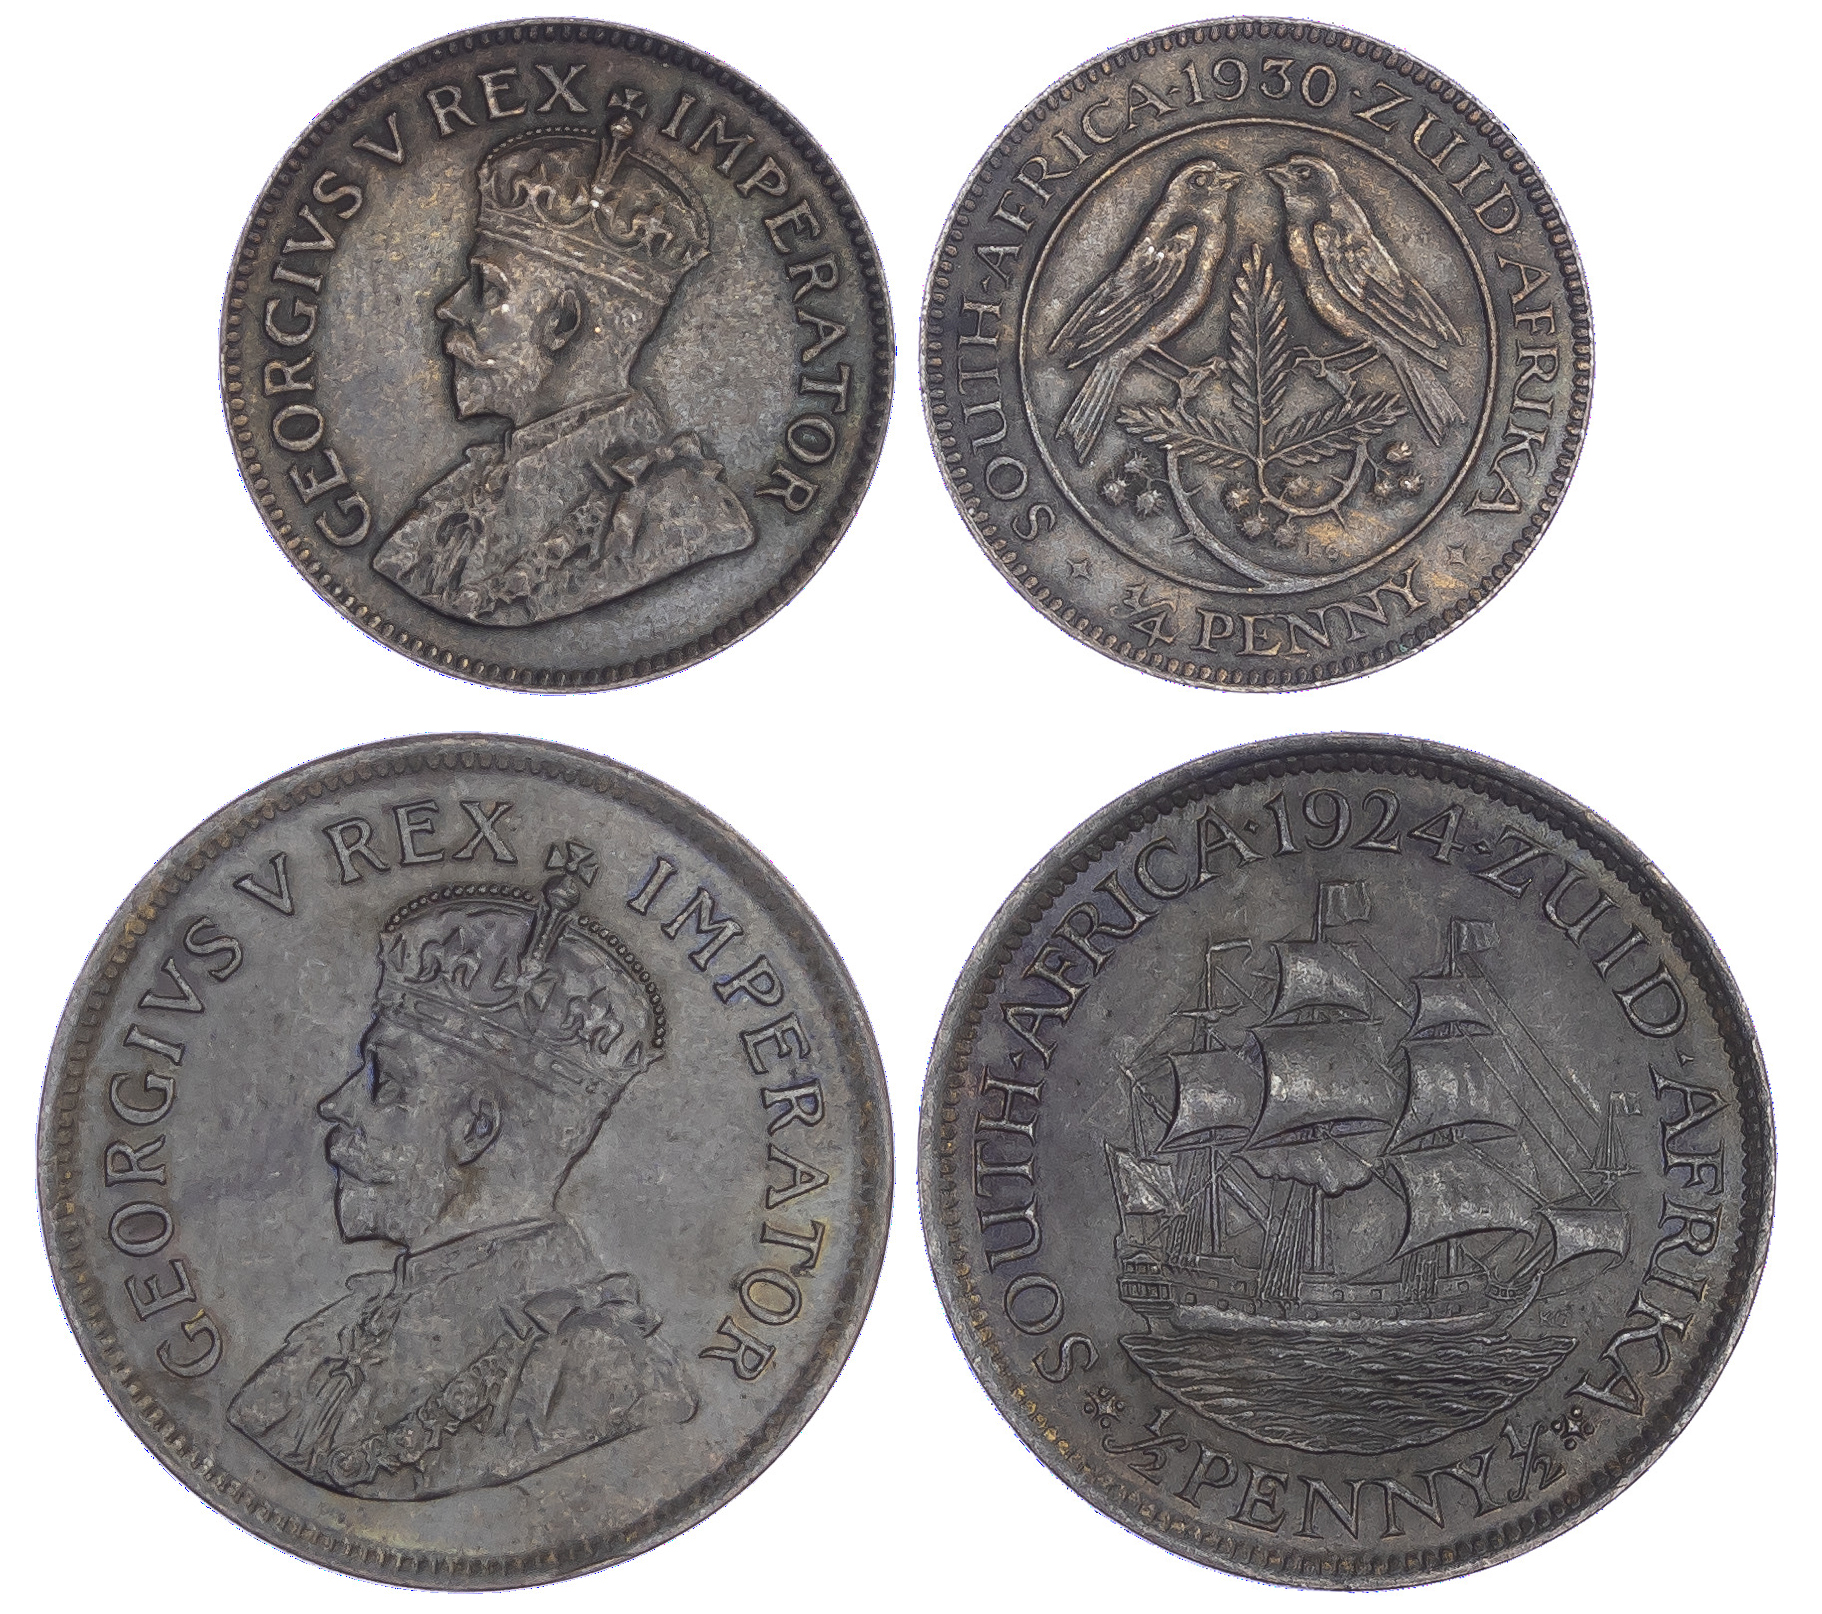 South Africa, George V (1910-1936), bronze Halfpenny and Farthing - 2 coins